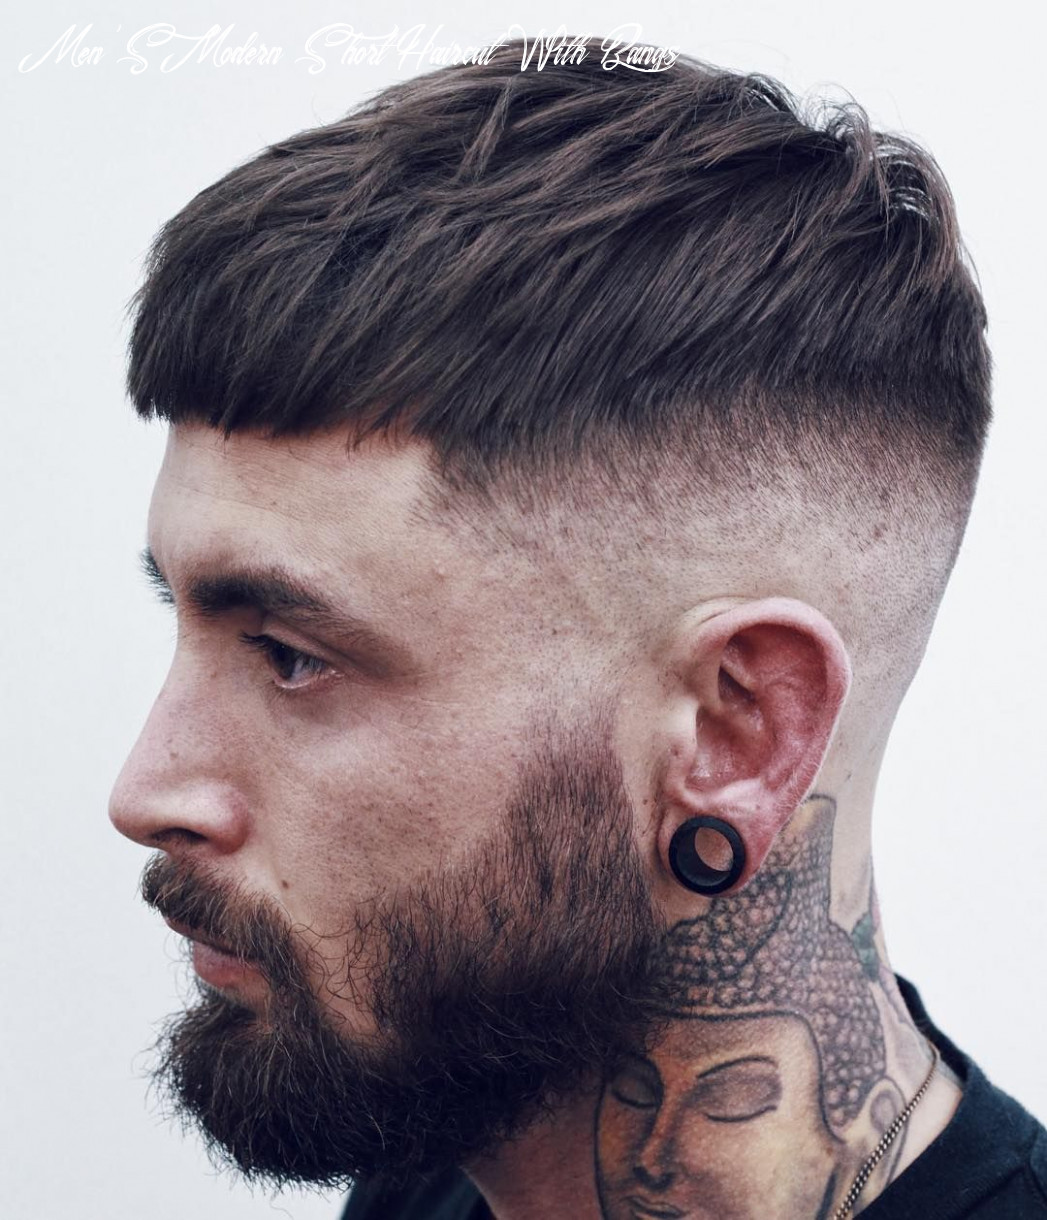 10 cool short haircuts hairstyles for men (10 update) | mens